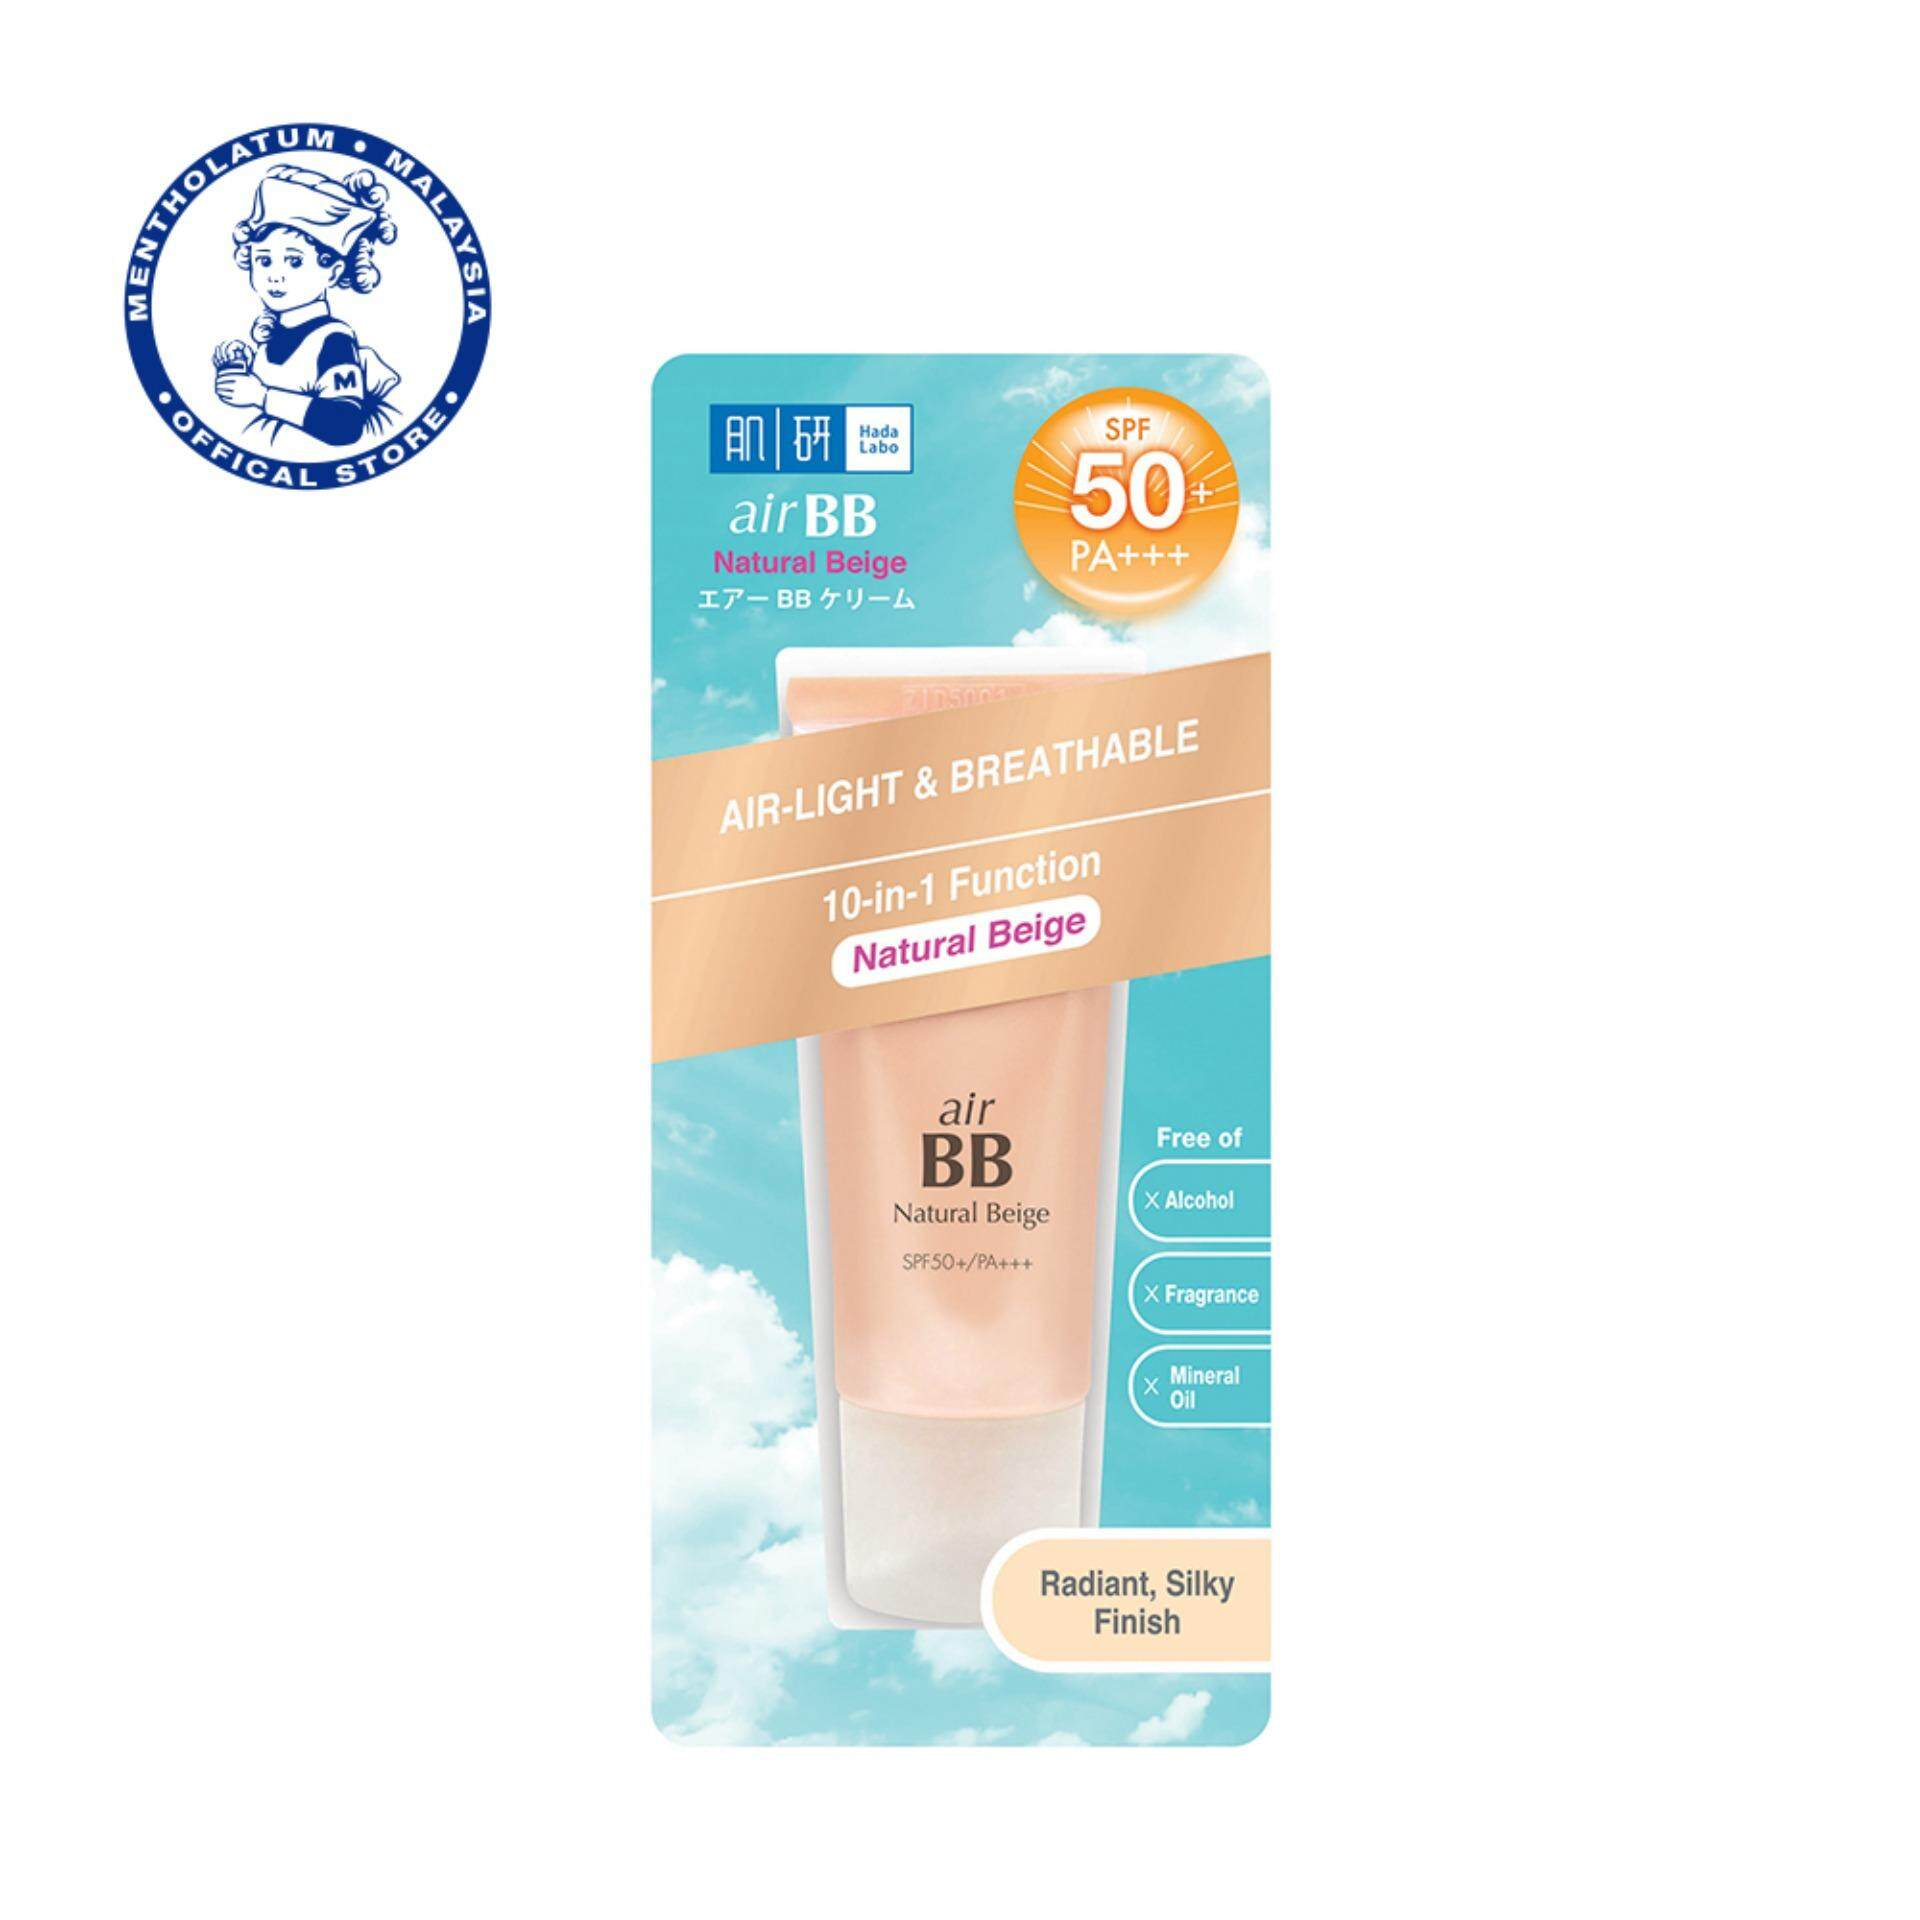 Hada Labo Air Bb Cream - Natural Beige 40g By My Mentholatum.